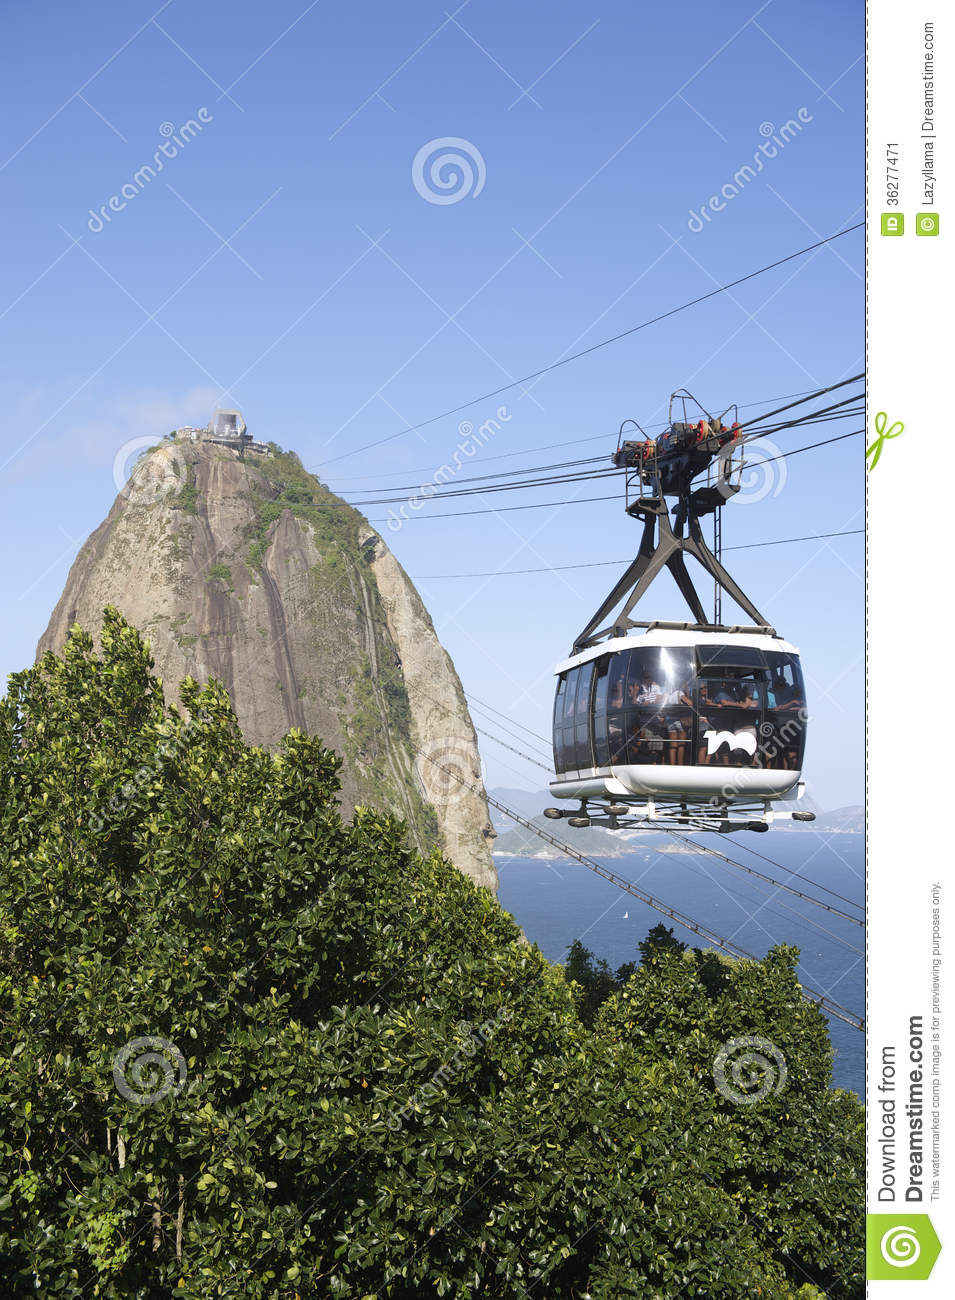 Sugarloaf Pao De Acucar Mountain Cable Car Rio Stock Image.